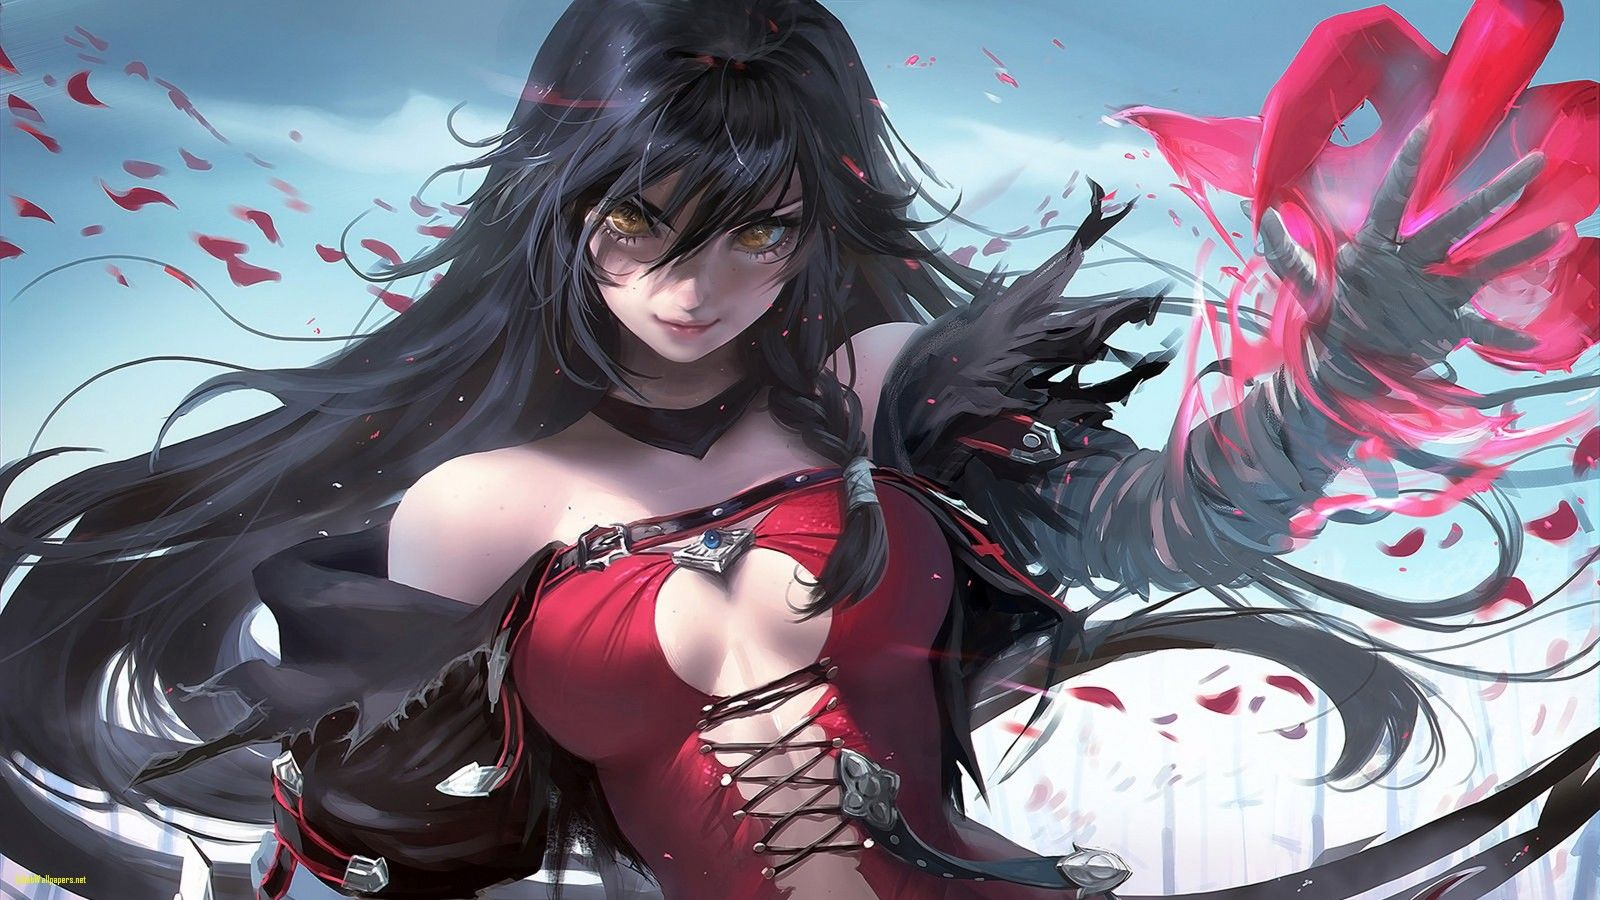 32 Best Free Awesome Anime Girl Wallpapers Wallpaperaccess